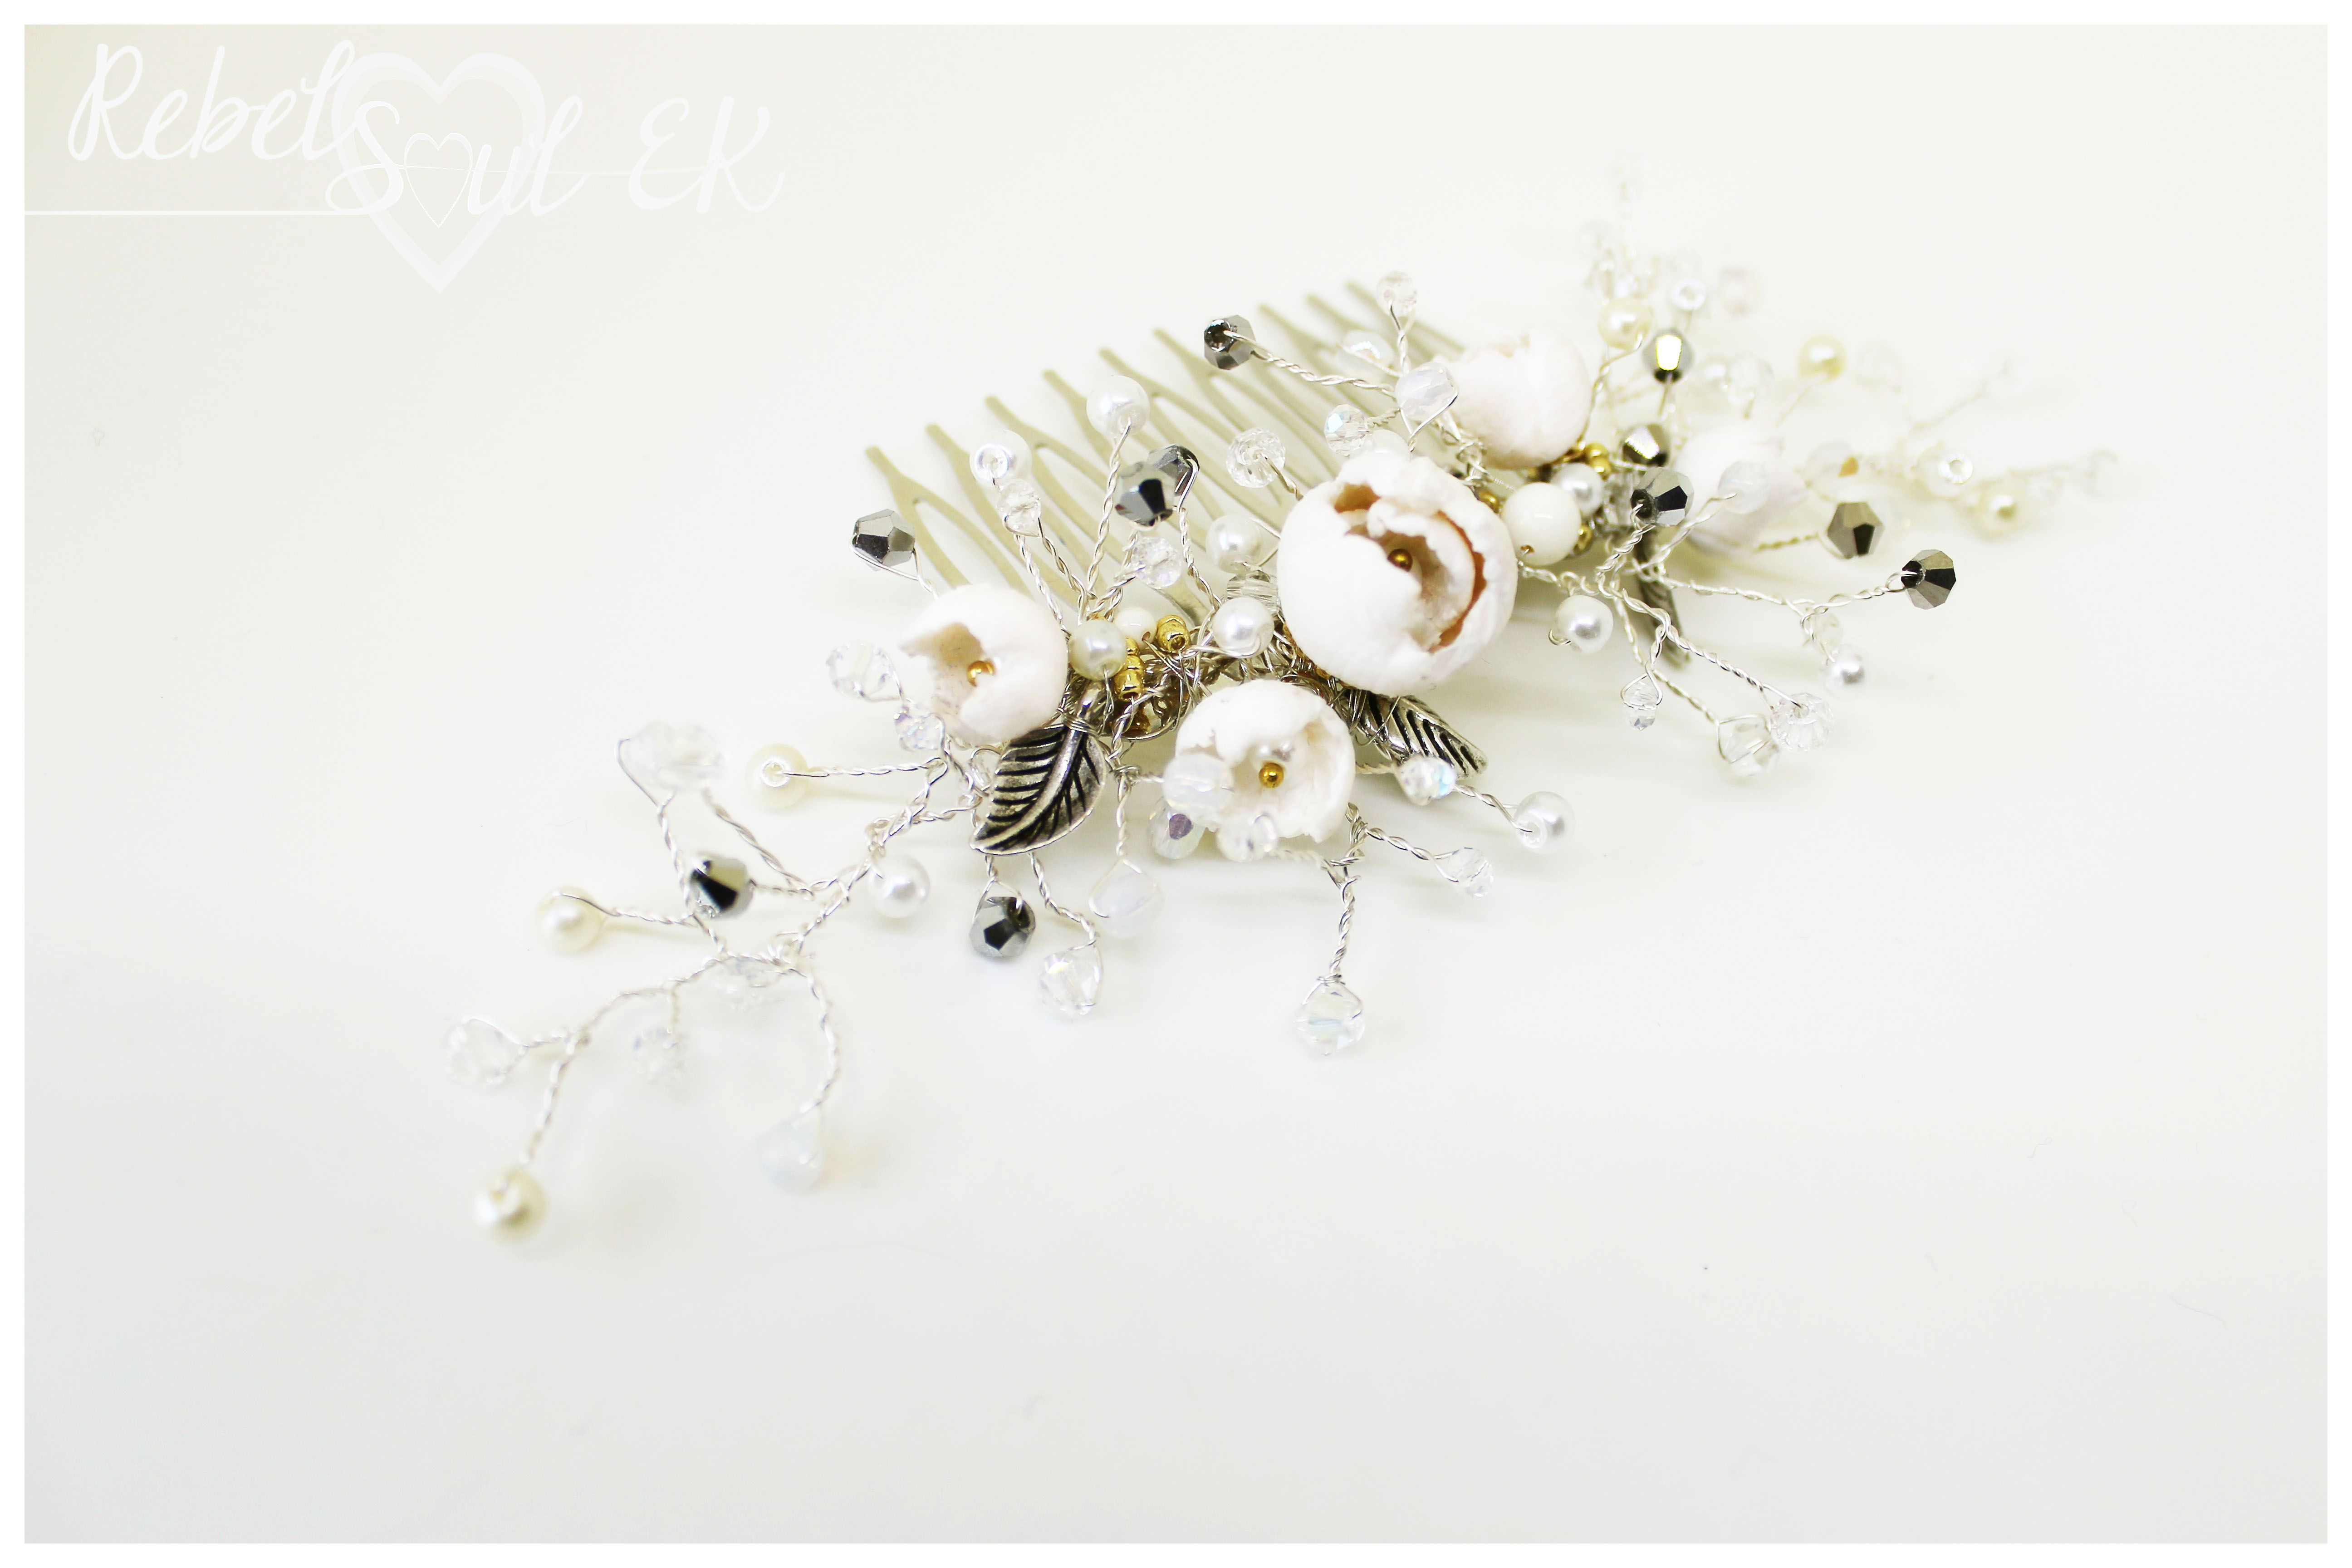 Hair accessory for bride wedding jewelry by RebelSoulEK